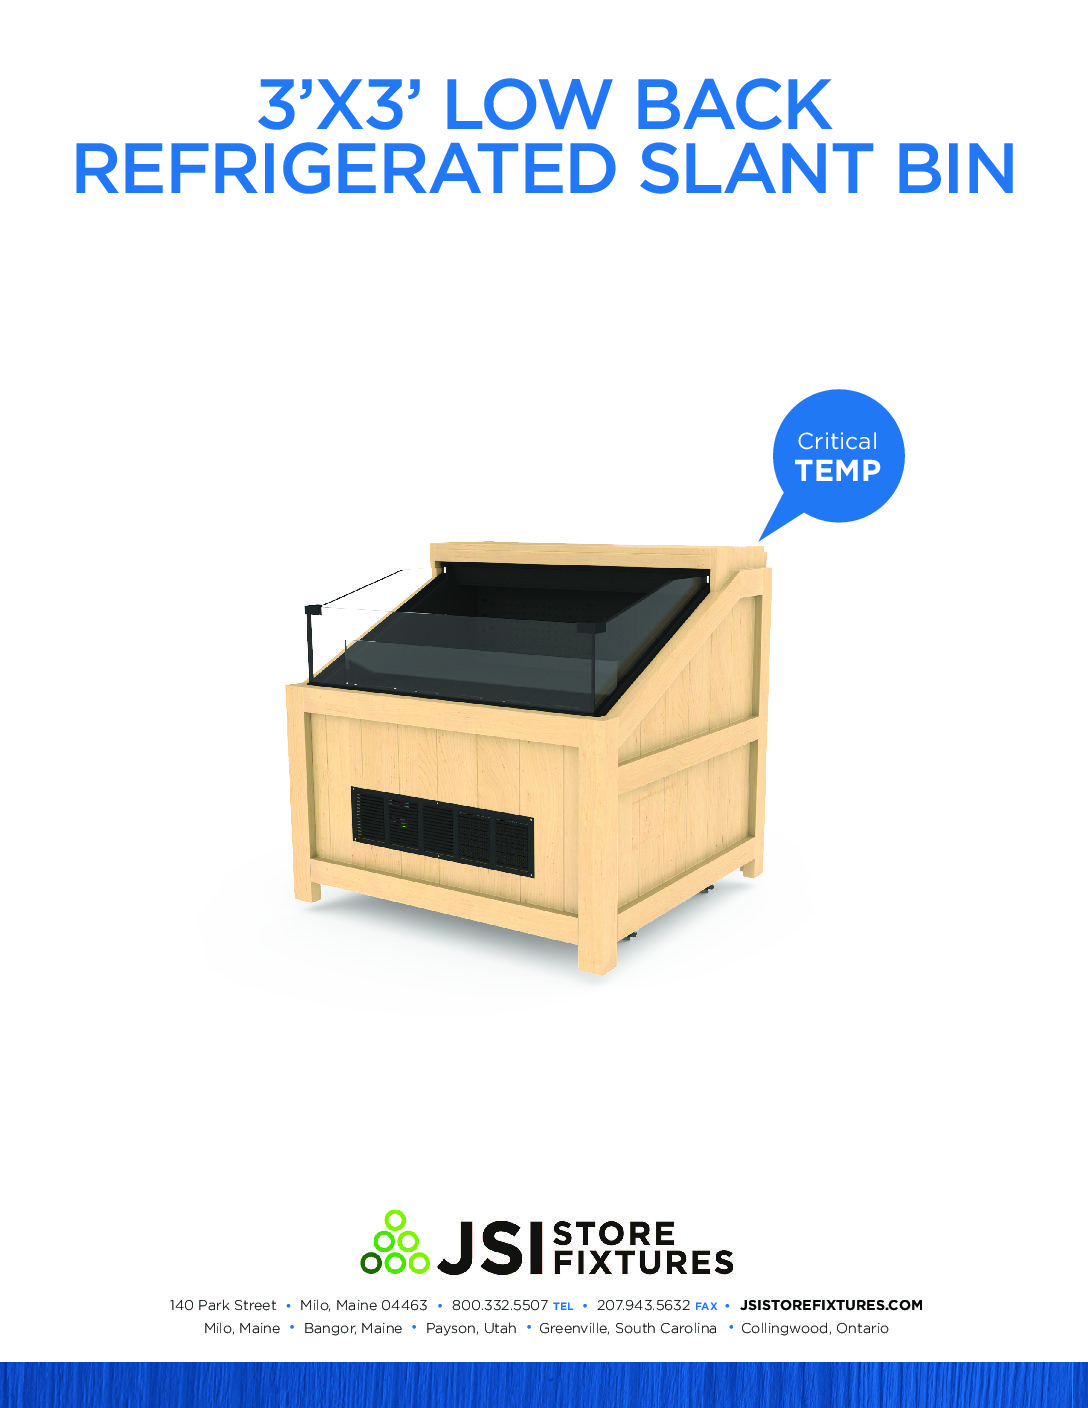 3'x3' Low Back Refrigerated Slant Bin Spec Sheet